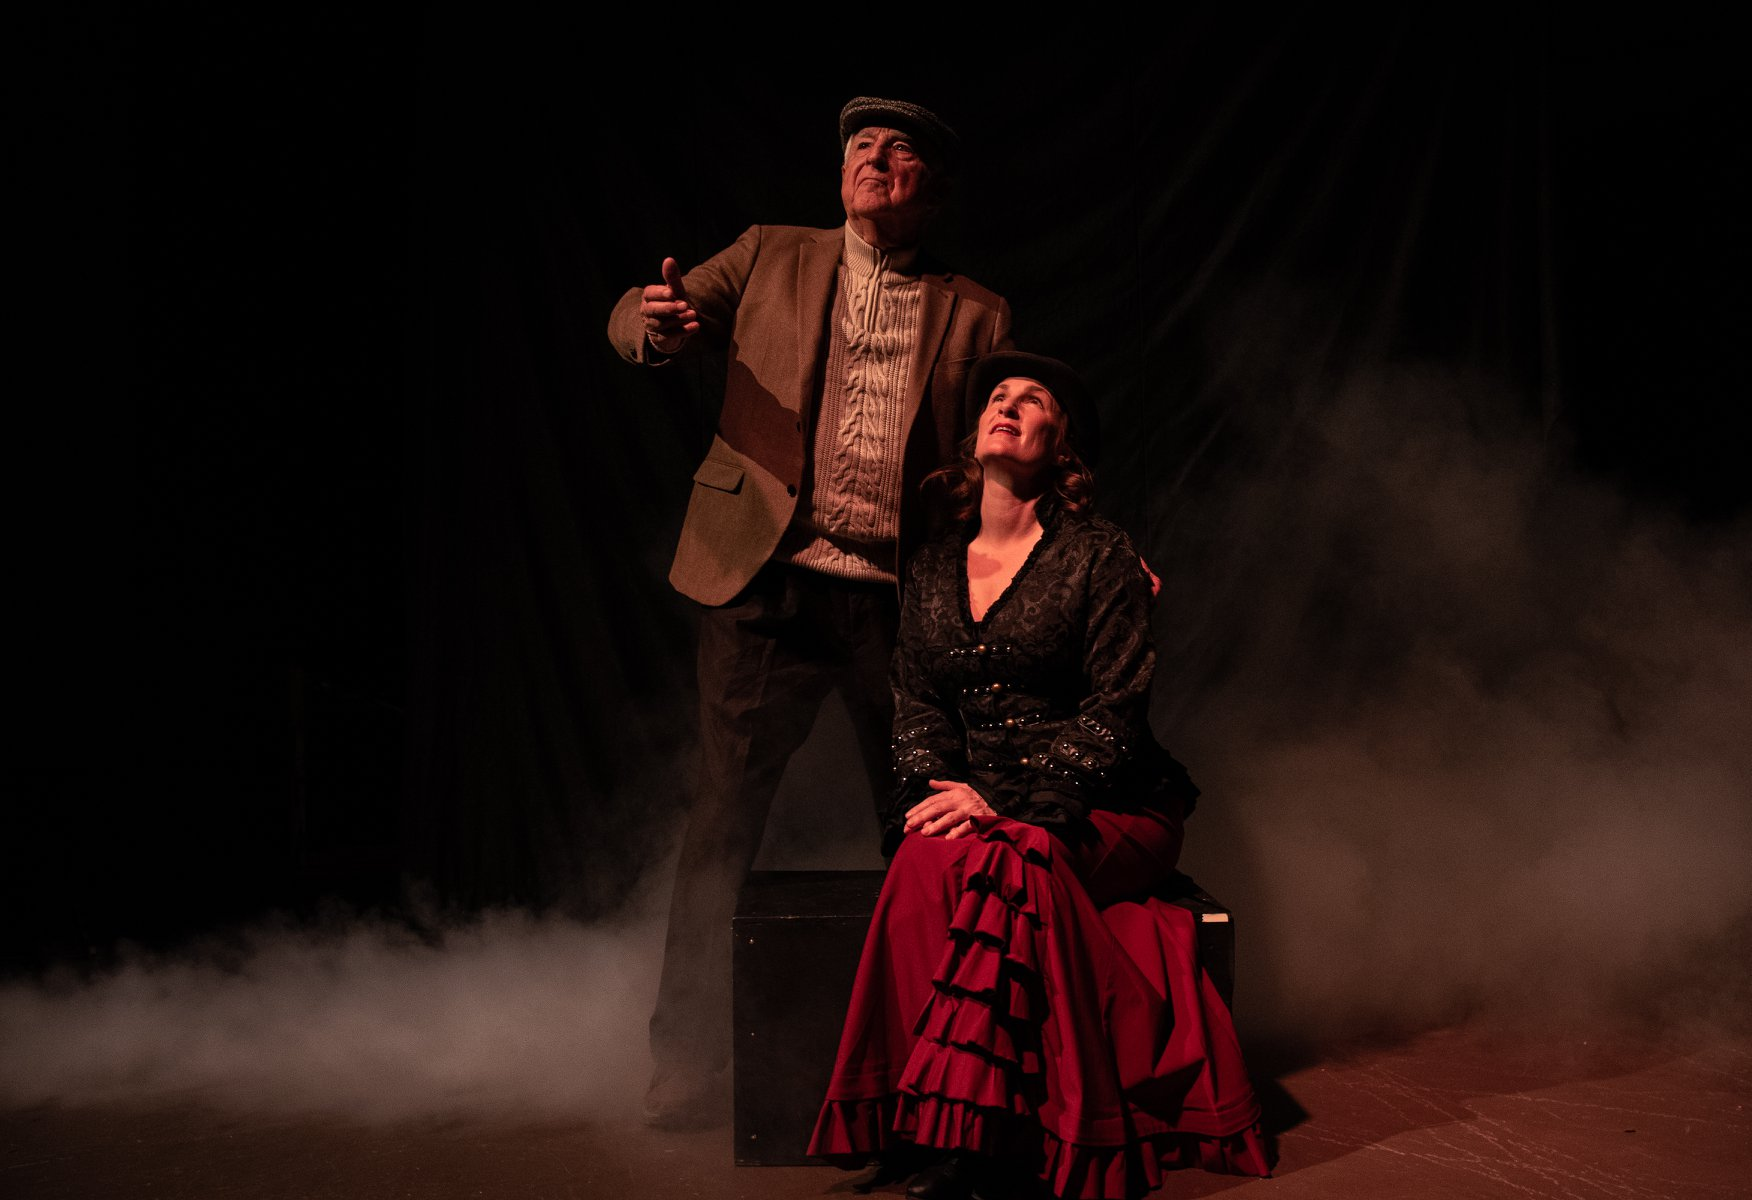 uploads/production_images/the-moors-gaslight-baker-ursula-rogers-2019/moors_gbt_03.jpg